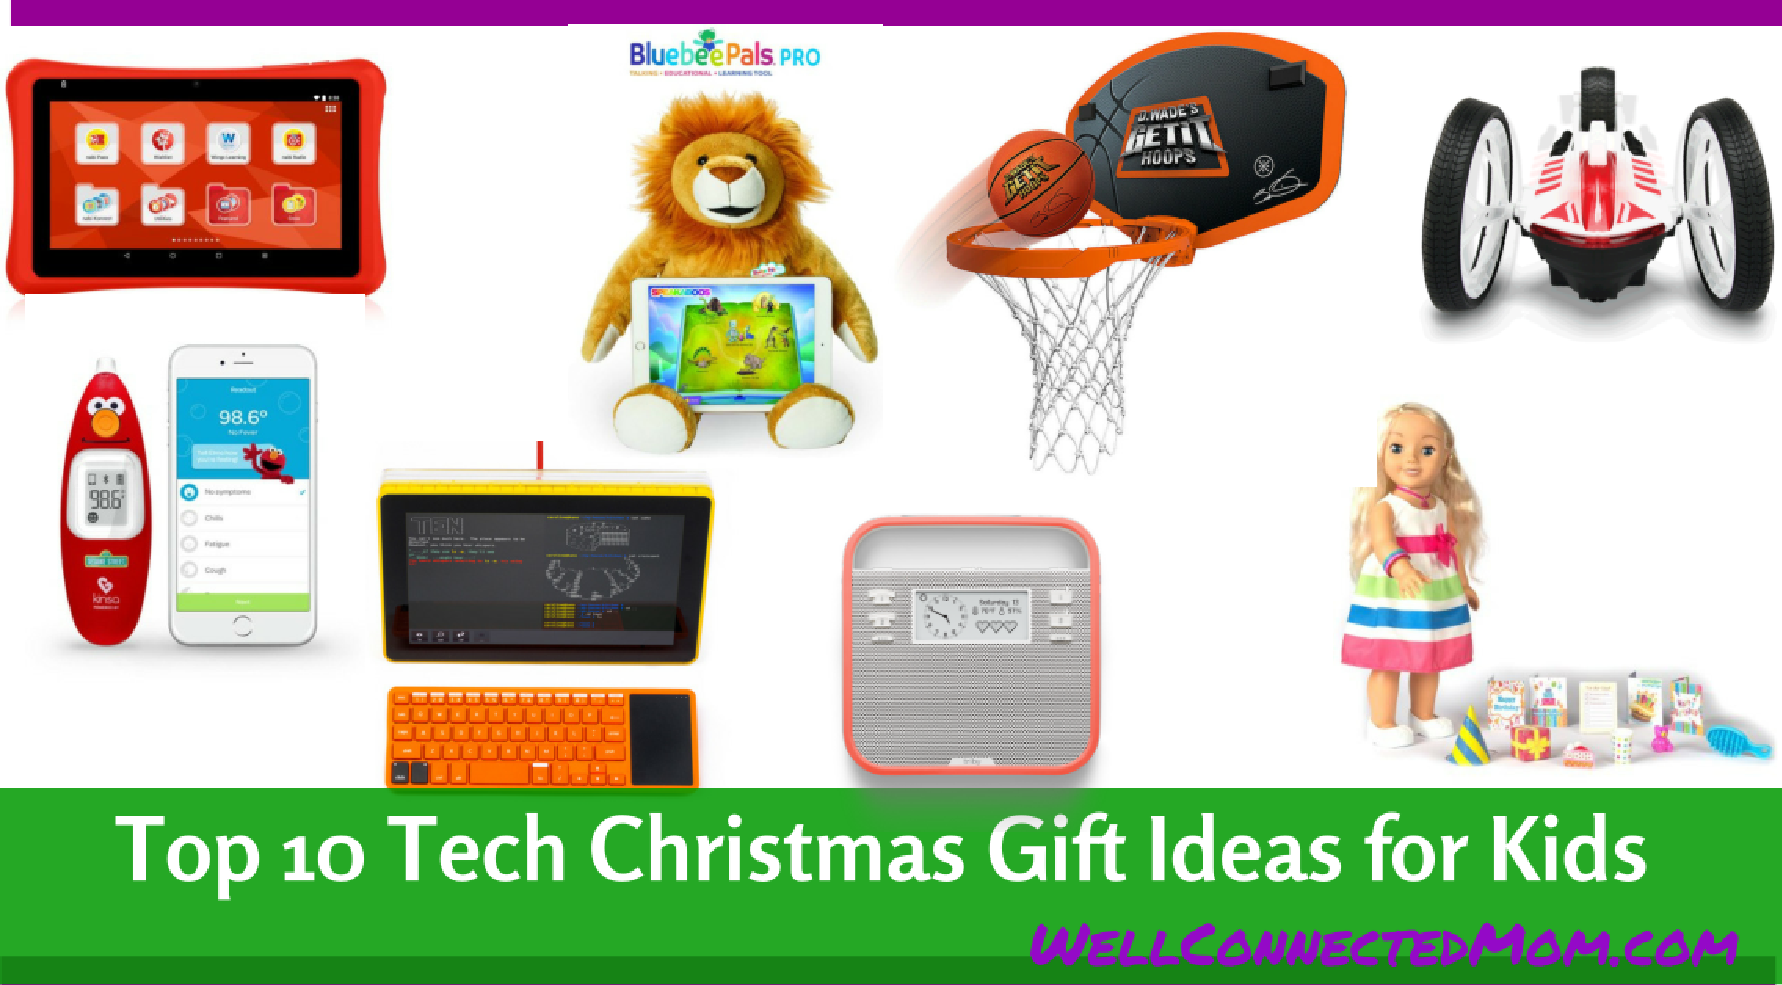 Top 10 Tech Christmas Gift Ideas for Kids - The Well Connected Mom